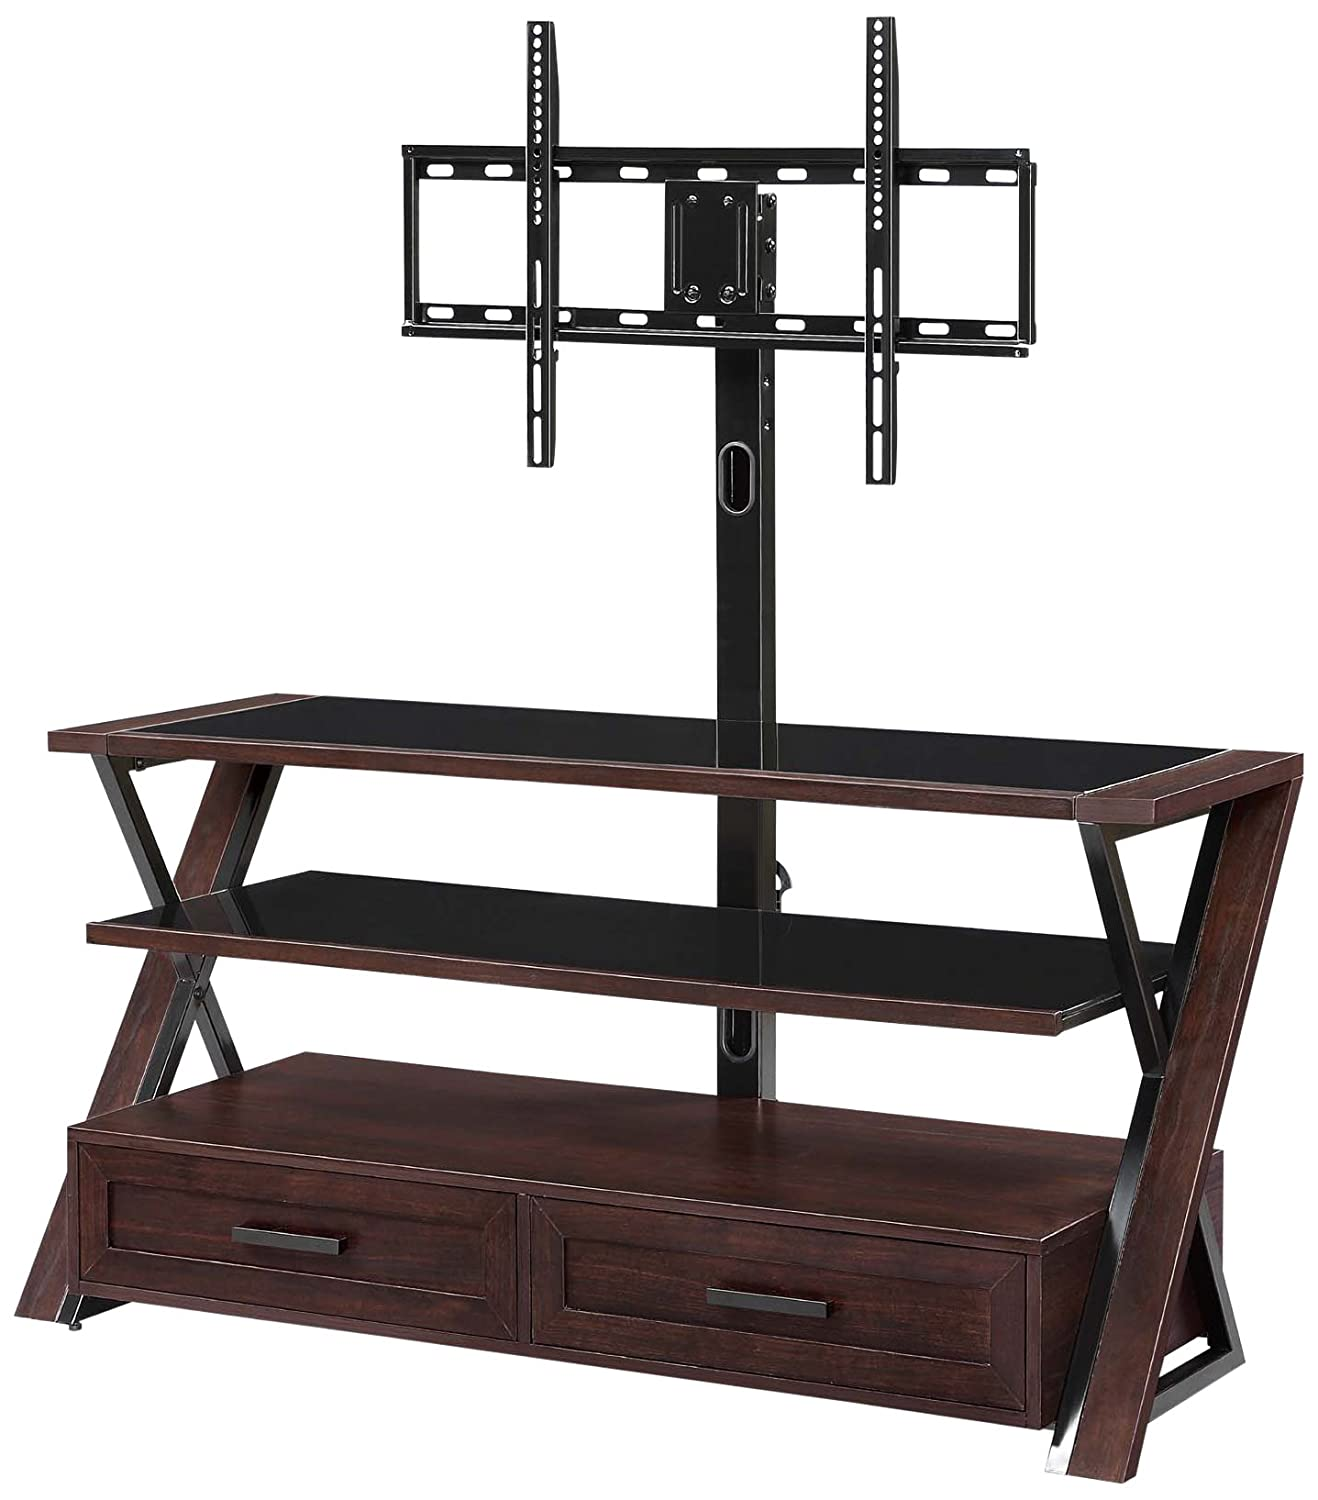 The 5 Best TV Stands In 2021: Reviews & Buying Guide 3